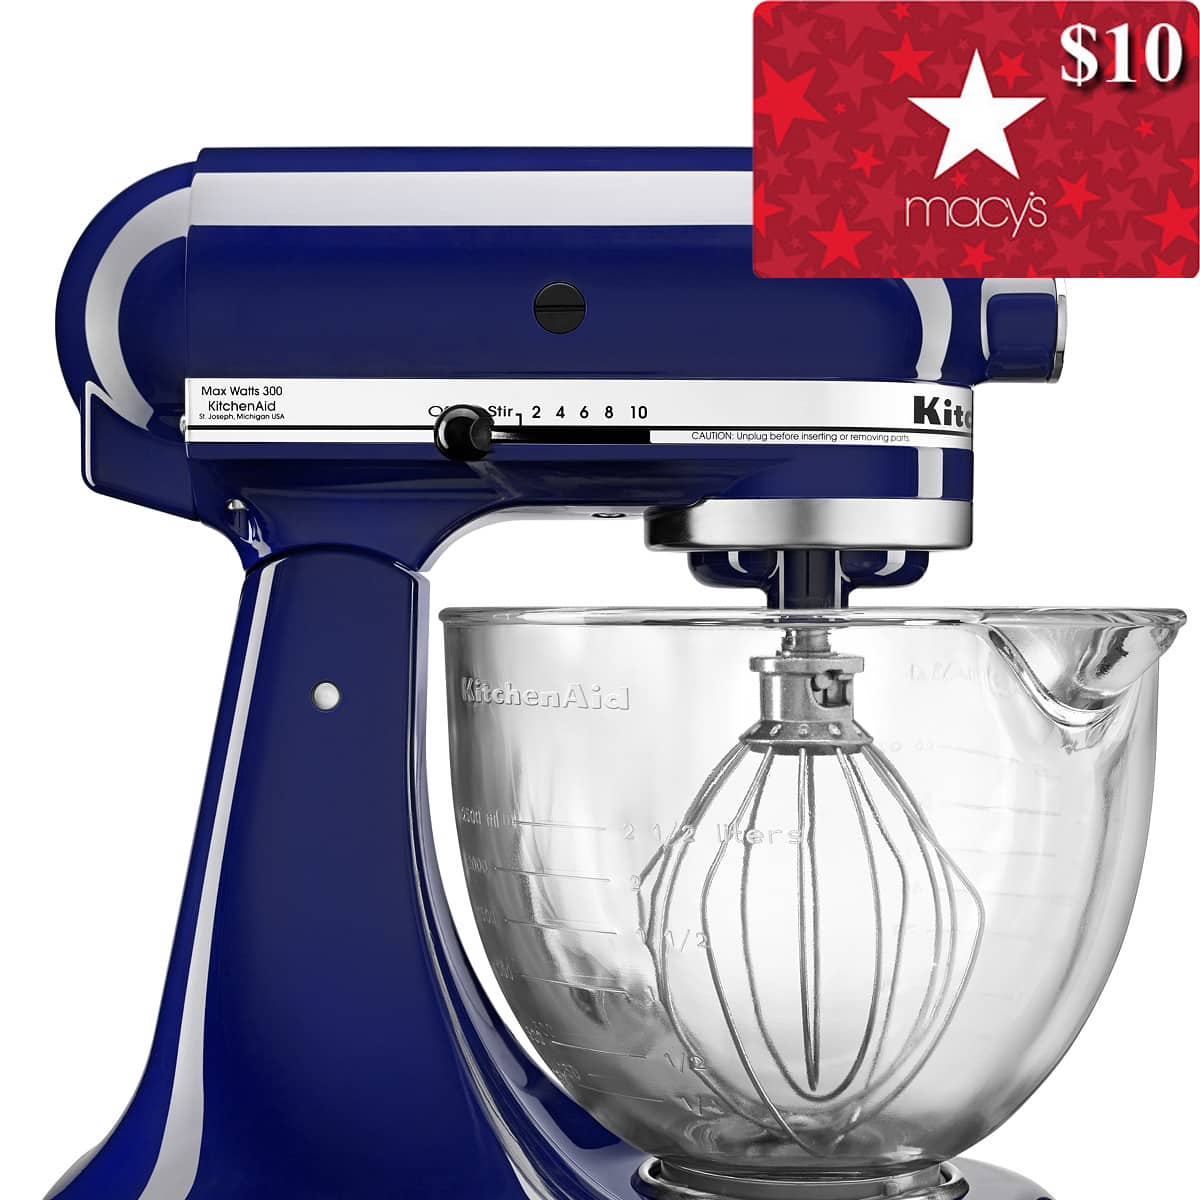 5-Qt KitchenAid Stand Mixer w/ Glass Bowl & Flex Edge Beater + $10 Macys eGift Card $180 (3 colors) + free shipping (after Slickdeals Rebate)